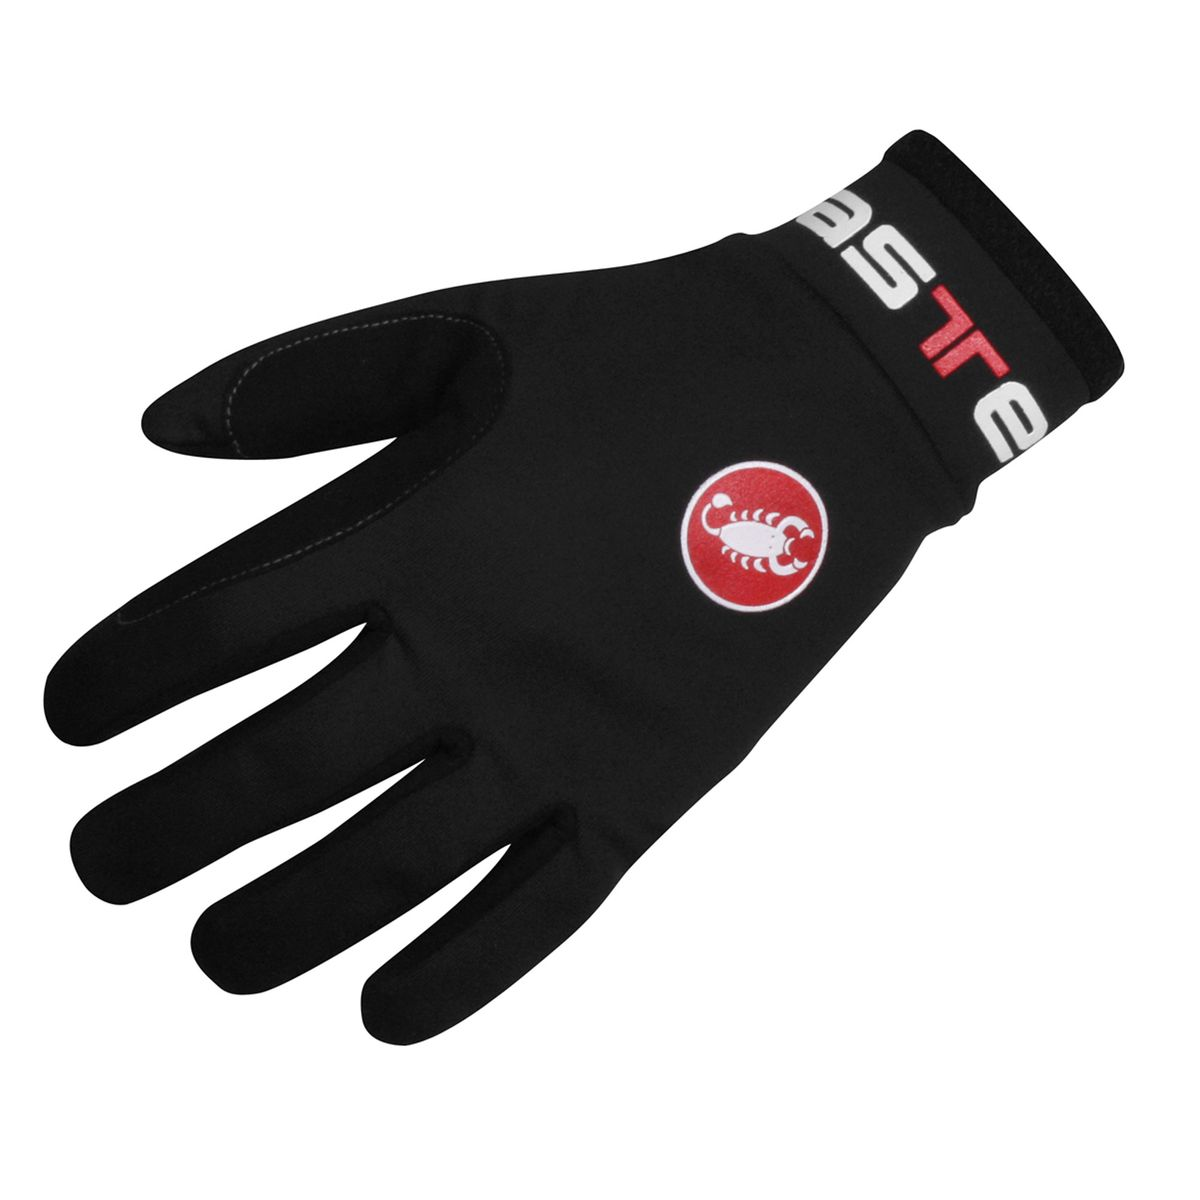 CASTELLI LIGHTNESS winter gloves